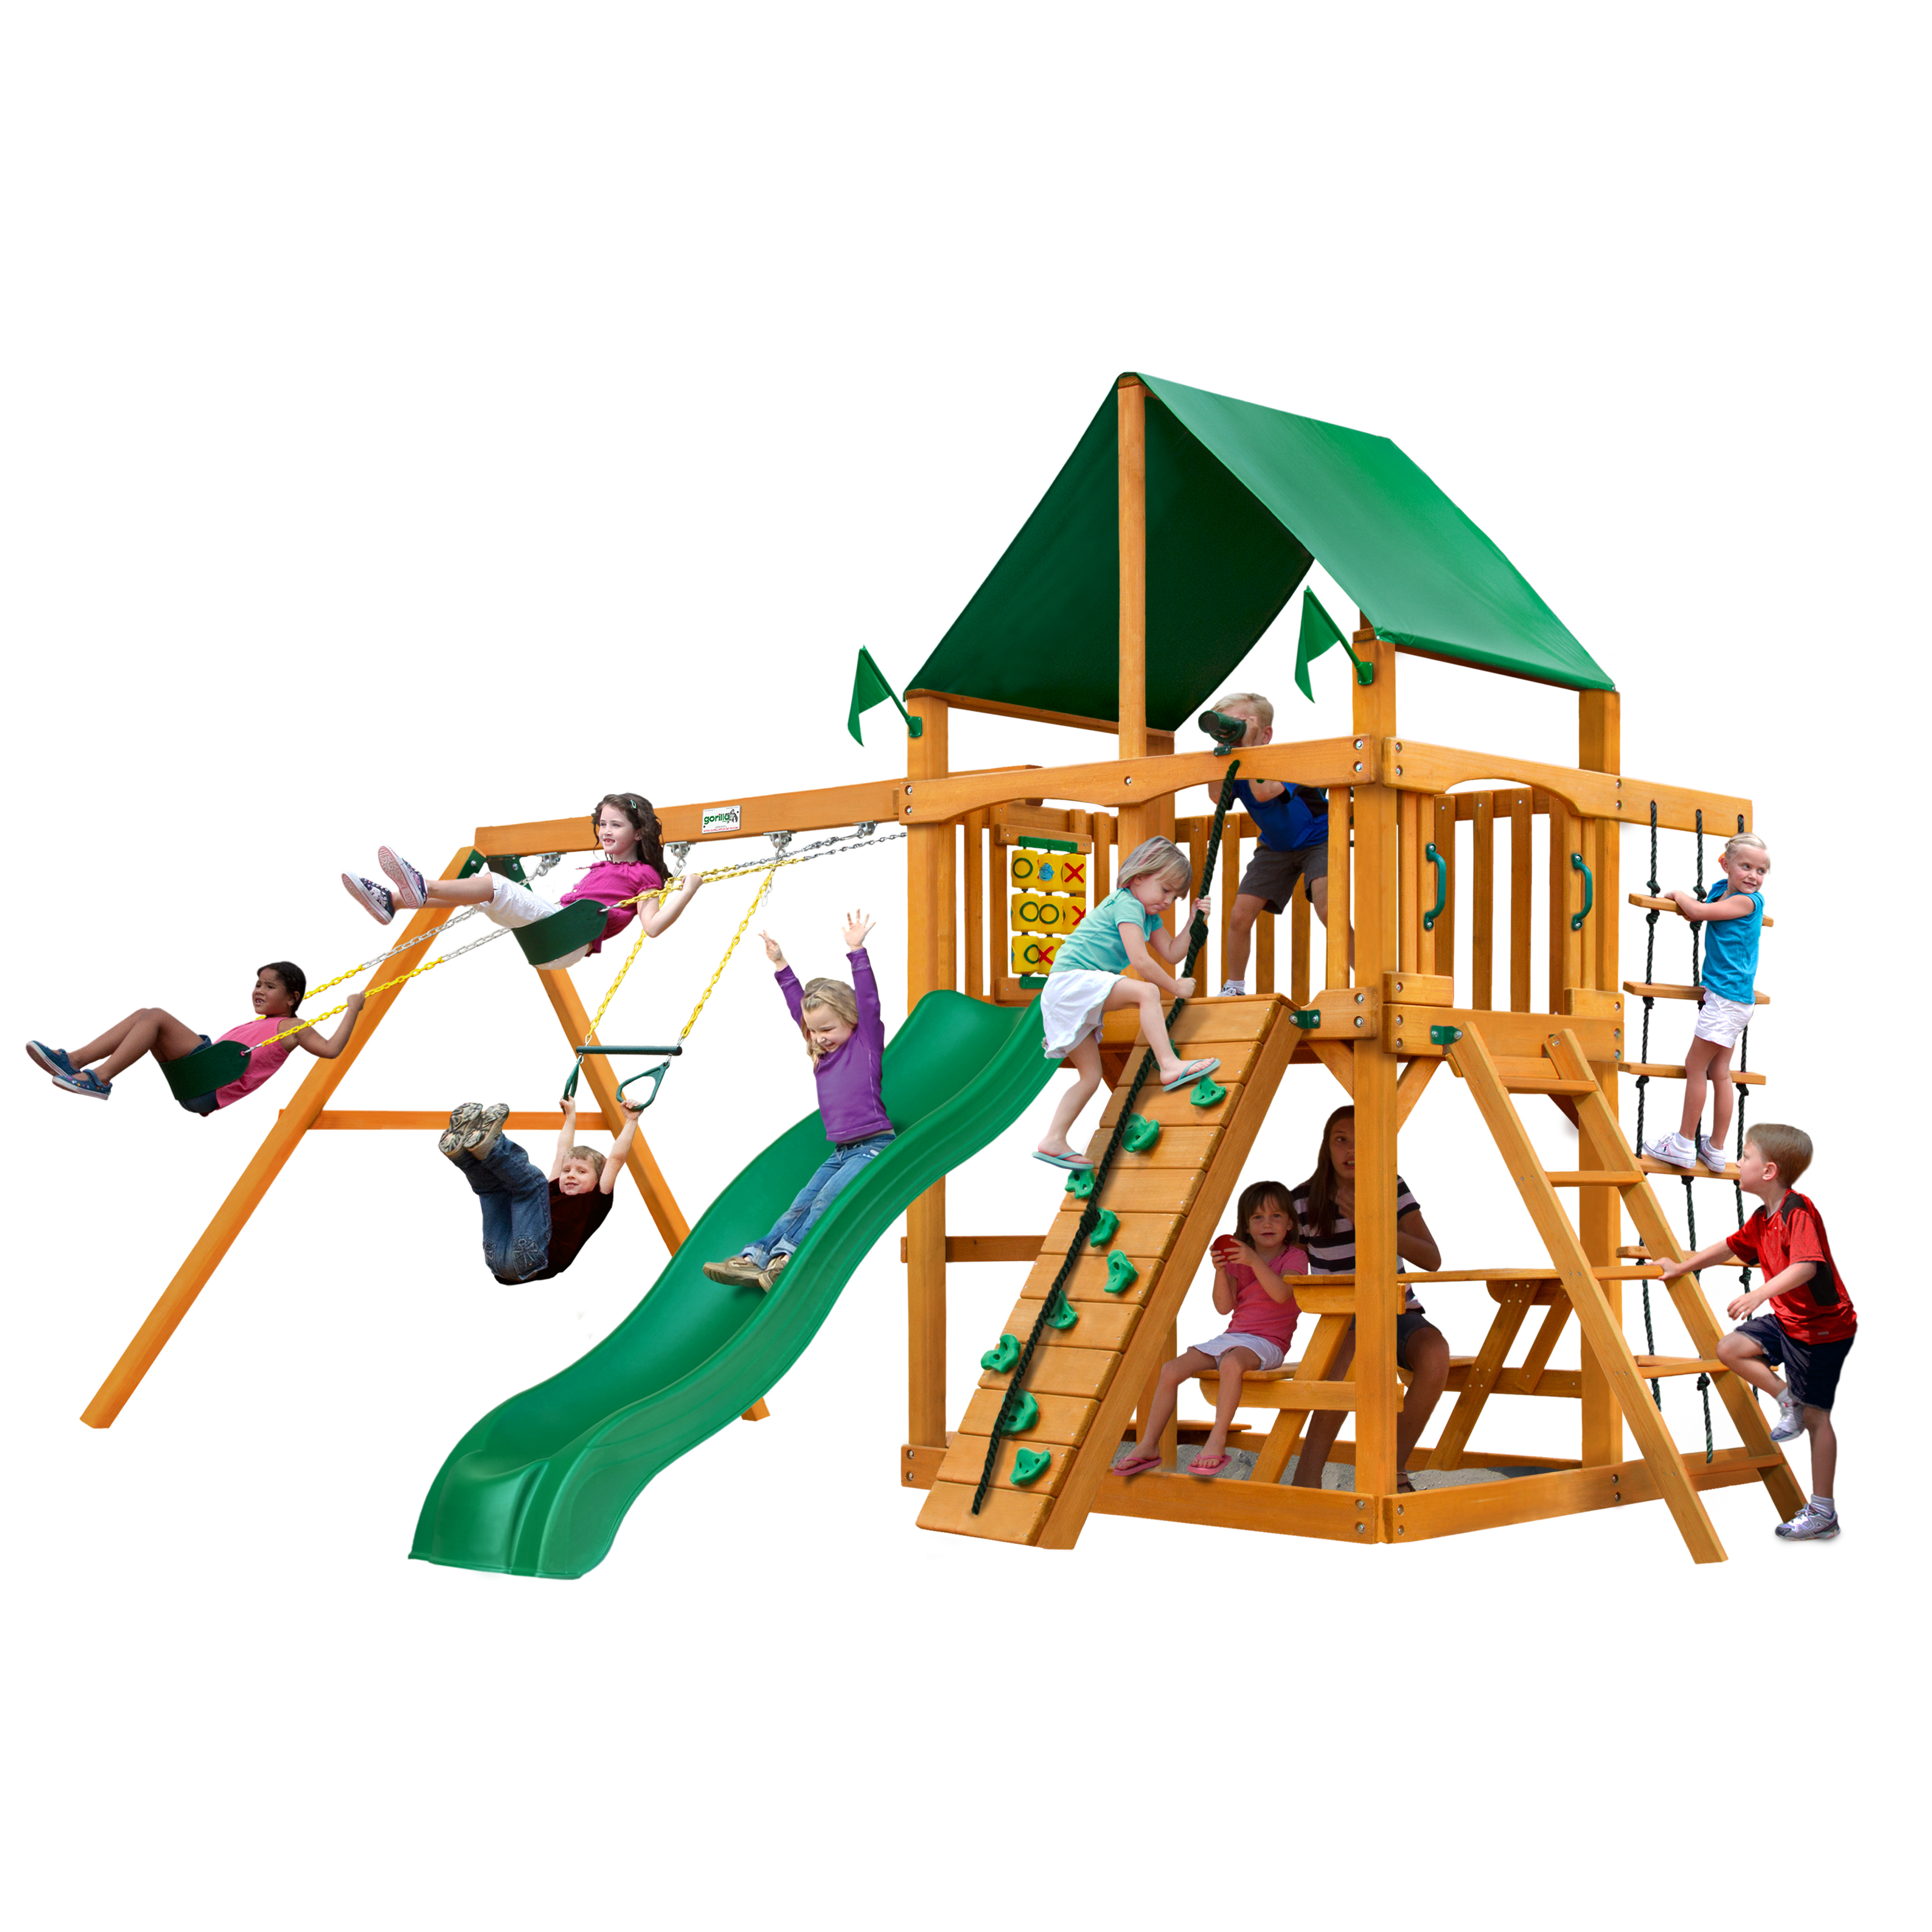 Chateau Clubhouse Cedar Swing Set with Malibu Wood Roof and Natural Cedar Posts